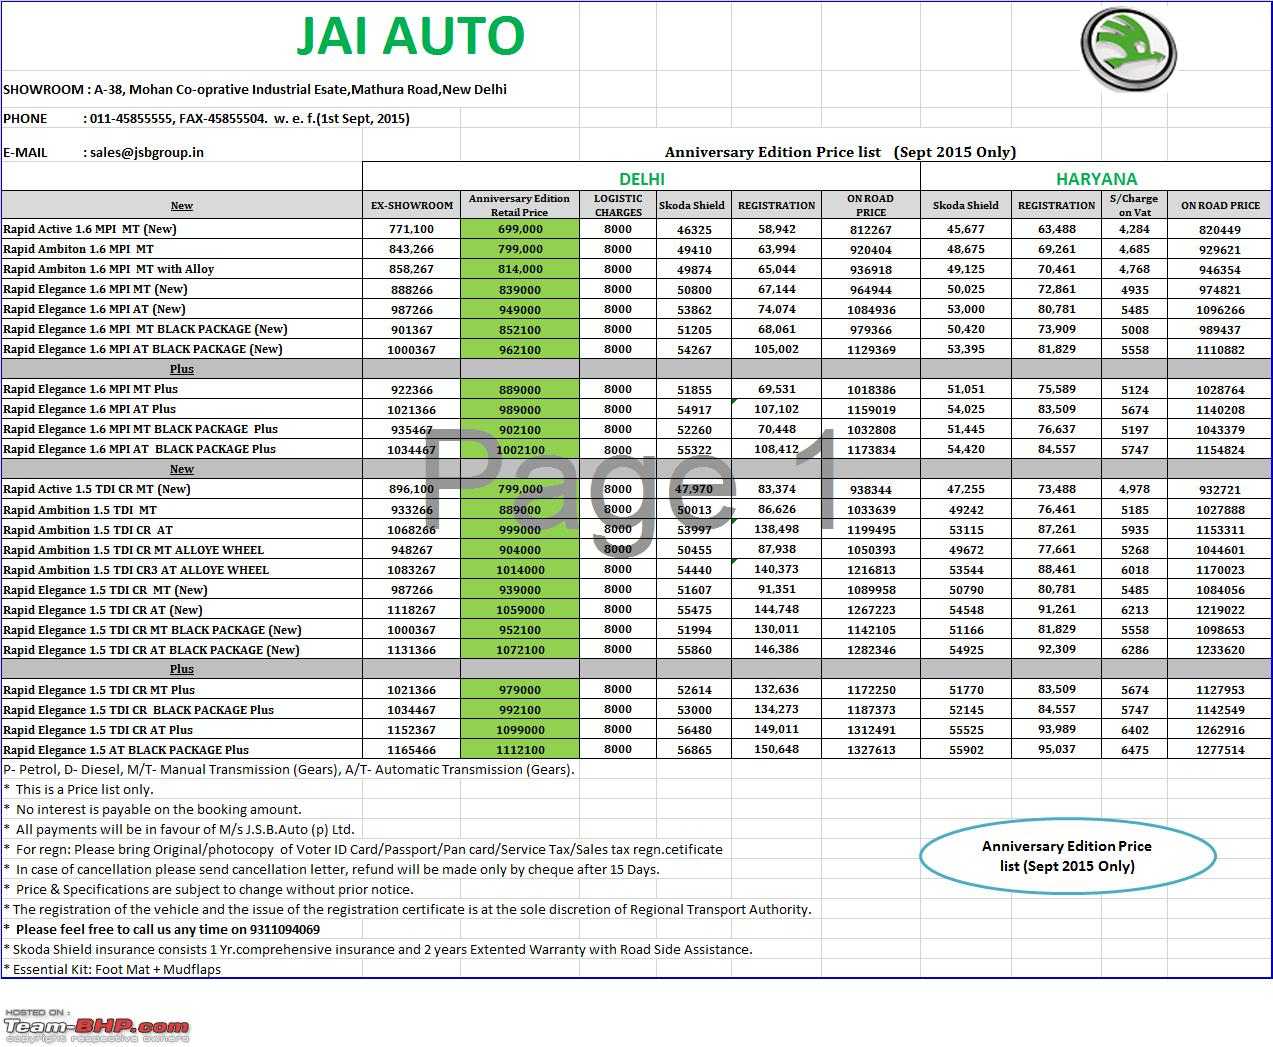 Skoda dealers charging RTO tax & insurance on old (higher) price ...